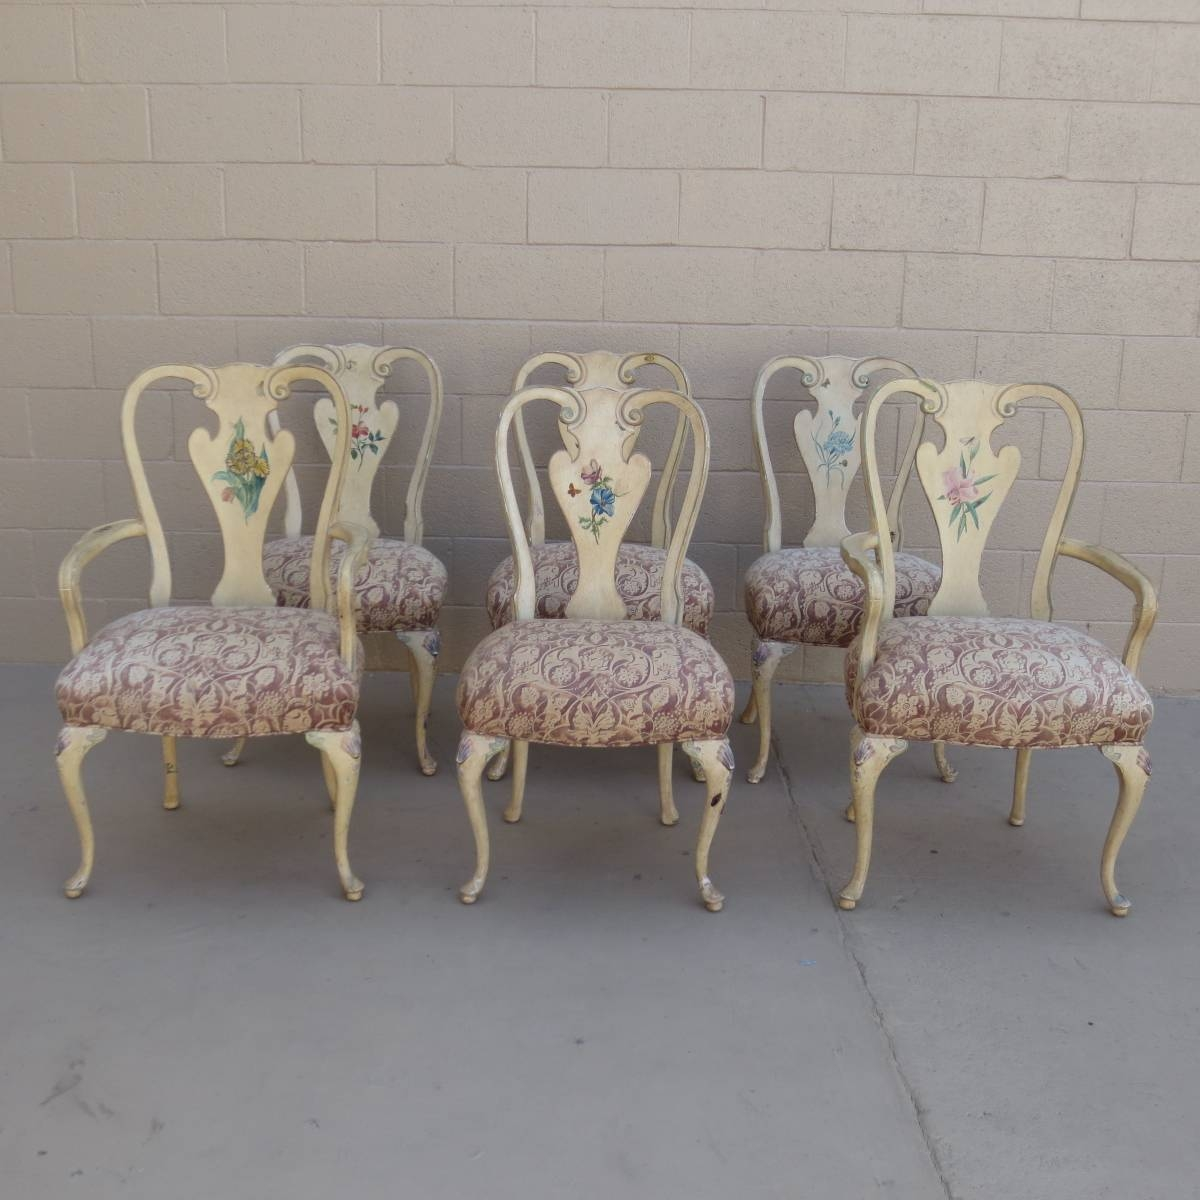 French Antique Dining Chairs Shabby Chic Chairs Antique Furniture inside Shabby Chic Sofas Cheap (Image 4 of 30)